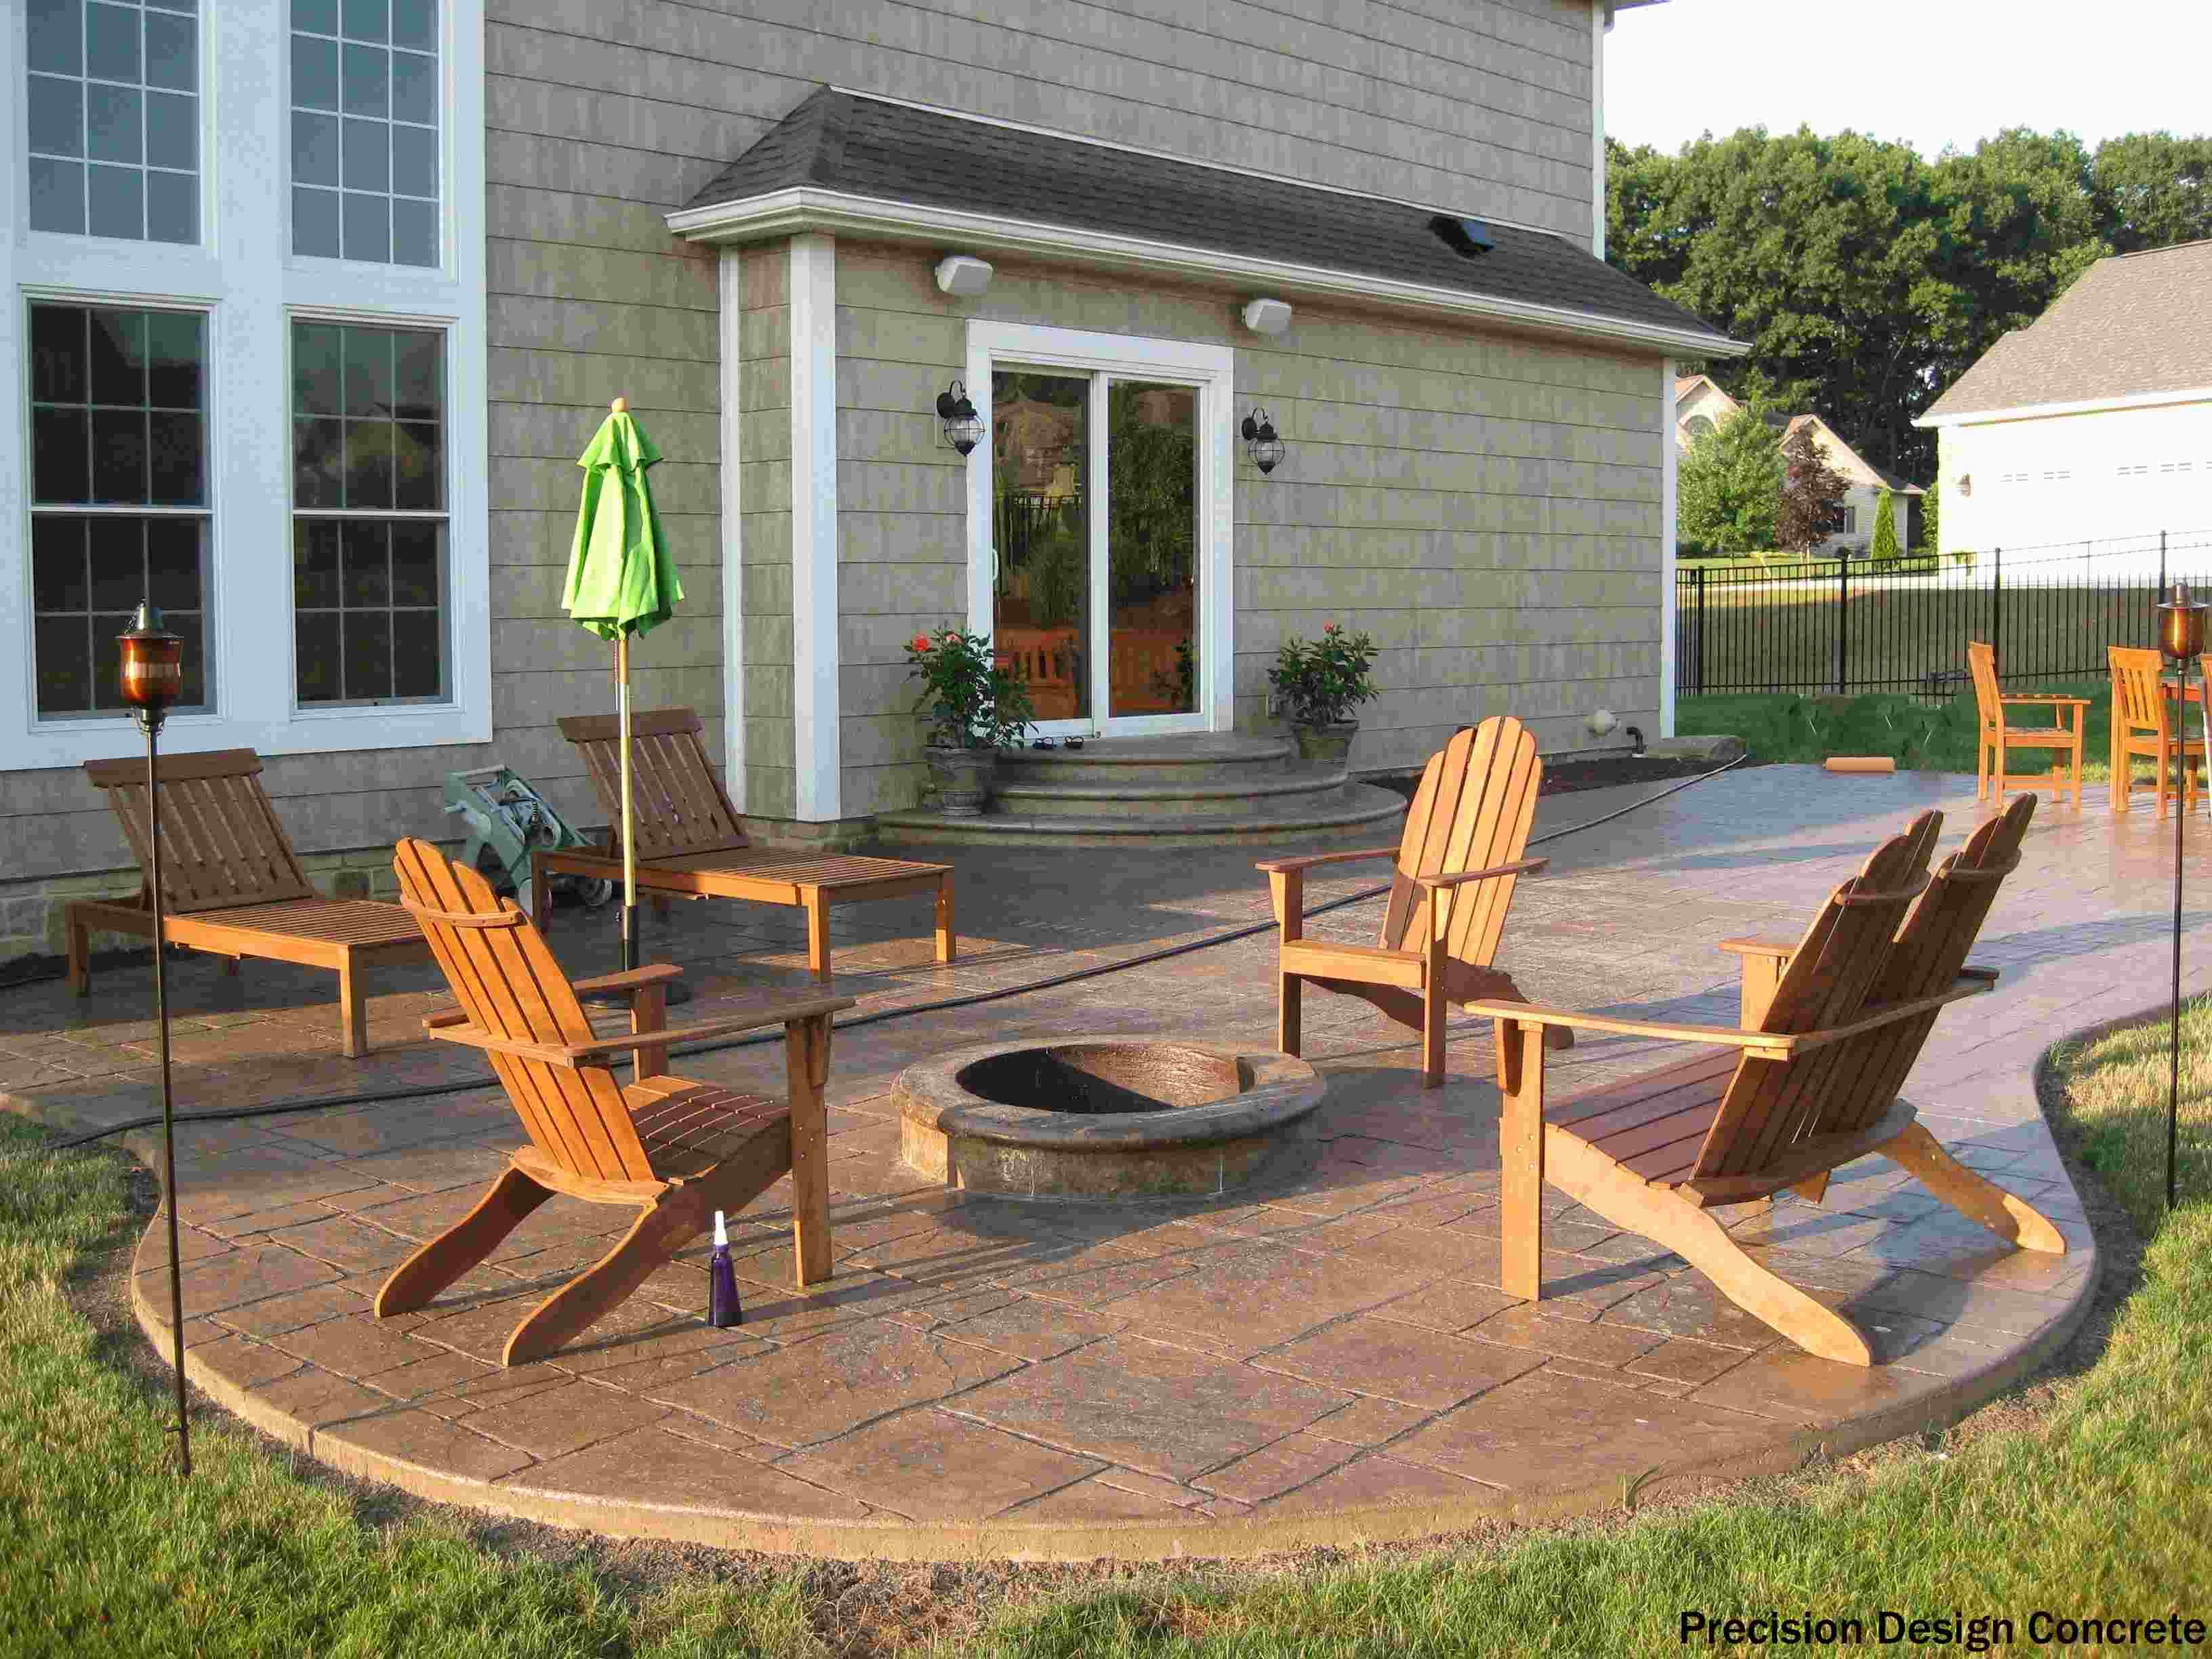 A Cobblestone Patio And In Ground Fire Pit Are Winners Is Our Book